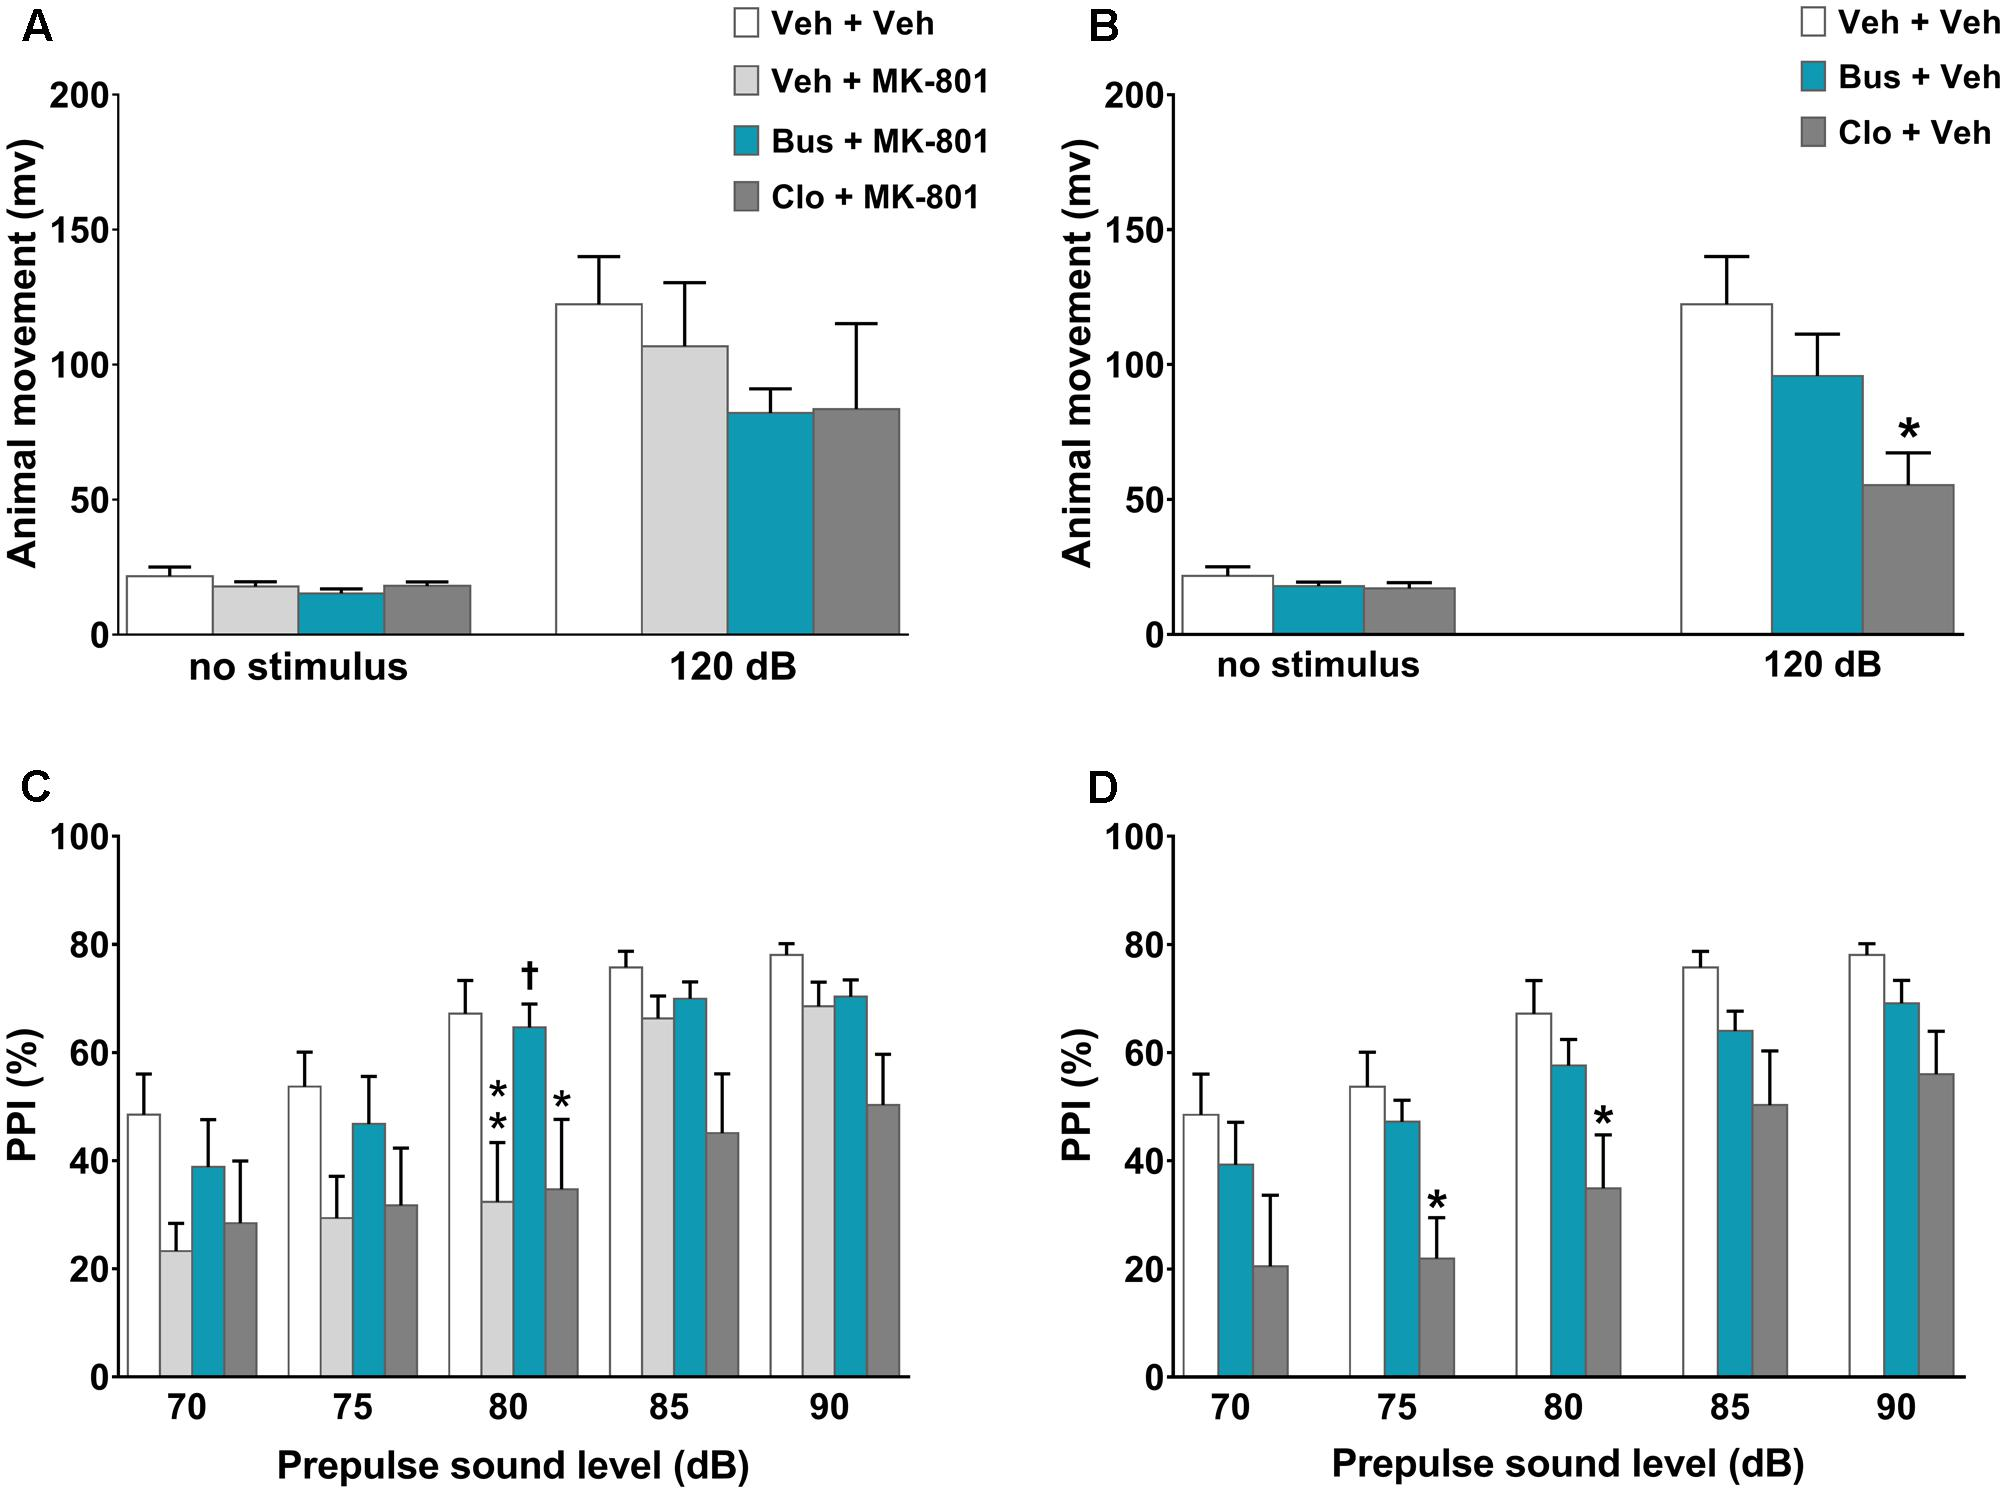 Frontiers | Buspirone Counteracts MK-801-Induced